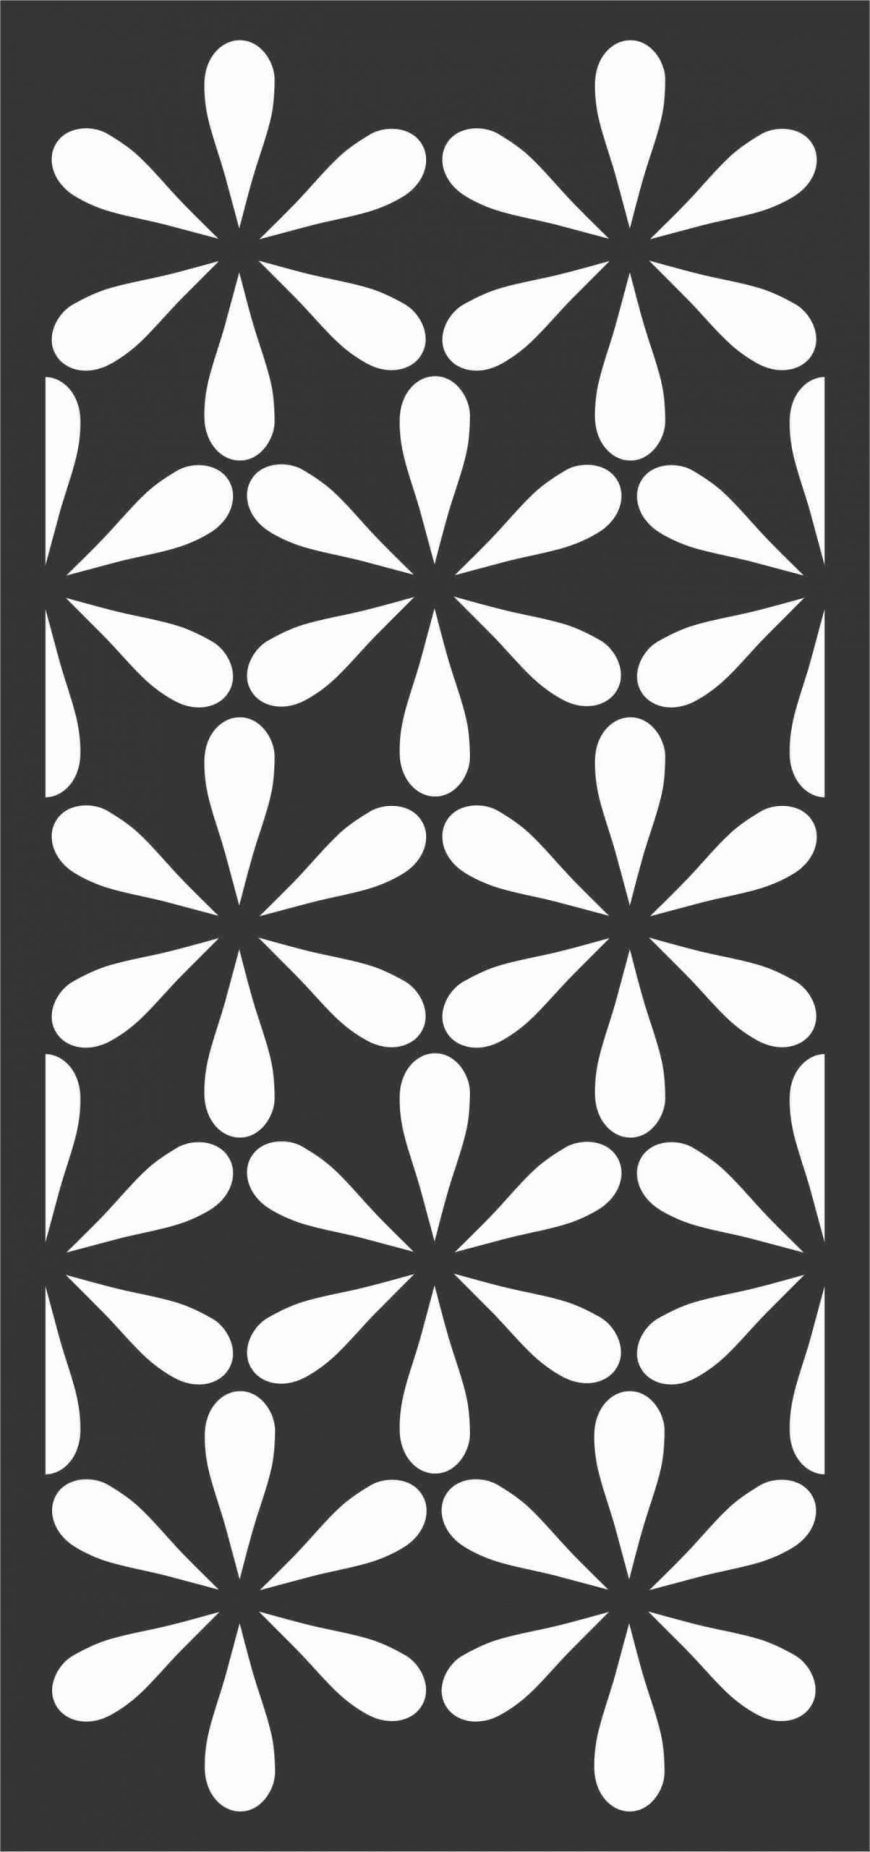 Floral Screen Patterns Design 36 Free DXF File